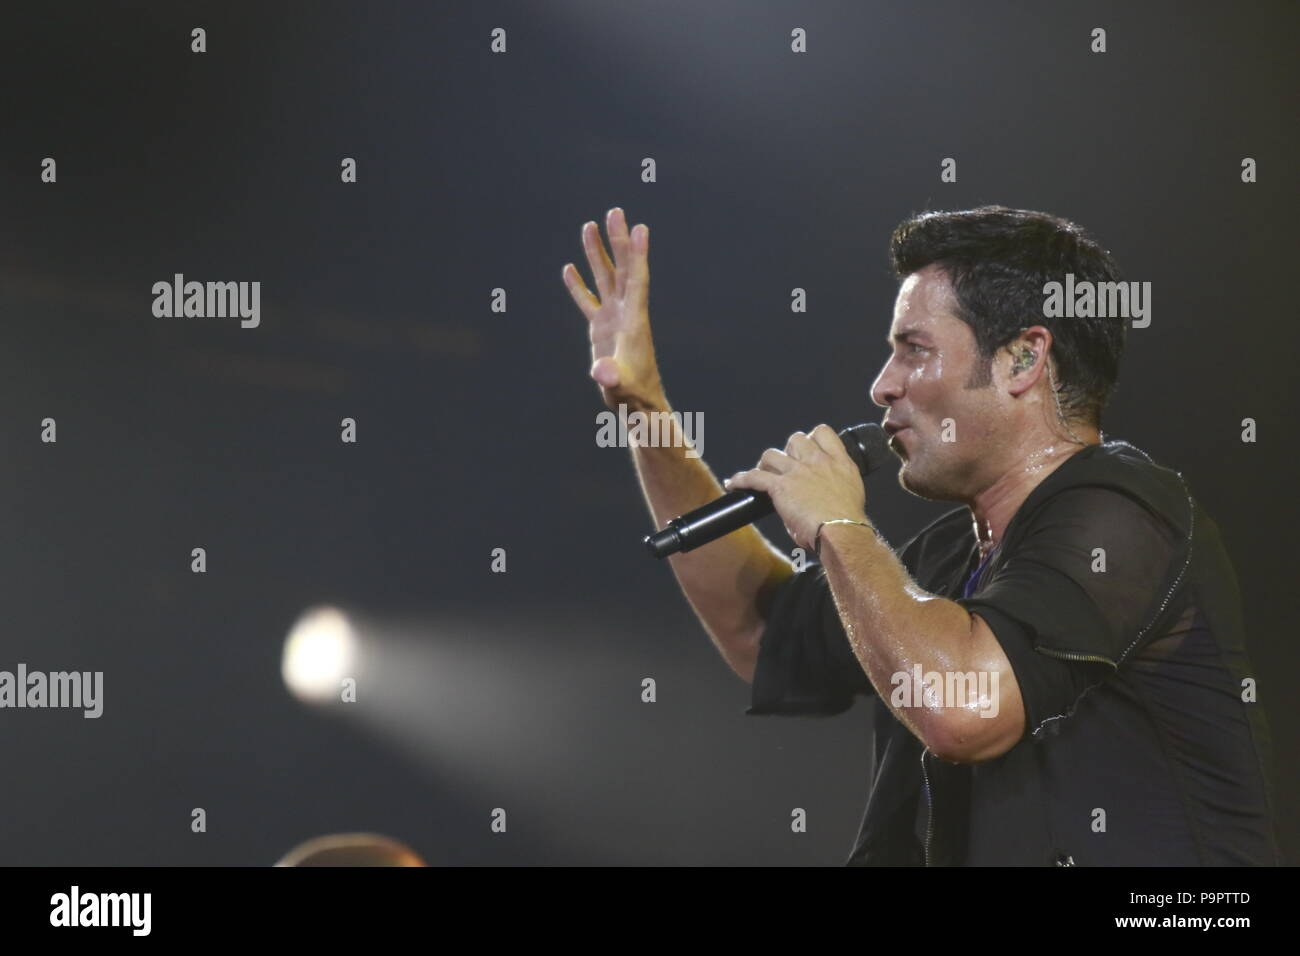 The dancer, singer and Puerto Rican actor Chayanne, during the night of his concert at The AXIS at Planet Hollywood in Las Vegas Nevada on 13 Sep 2015 Stock Photo